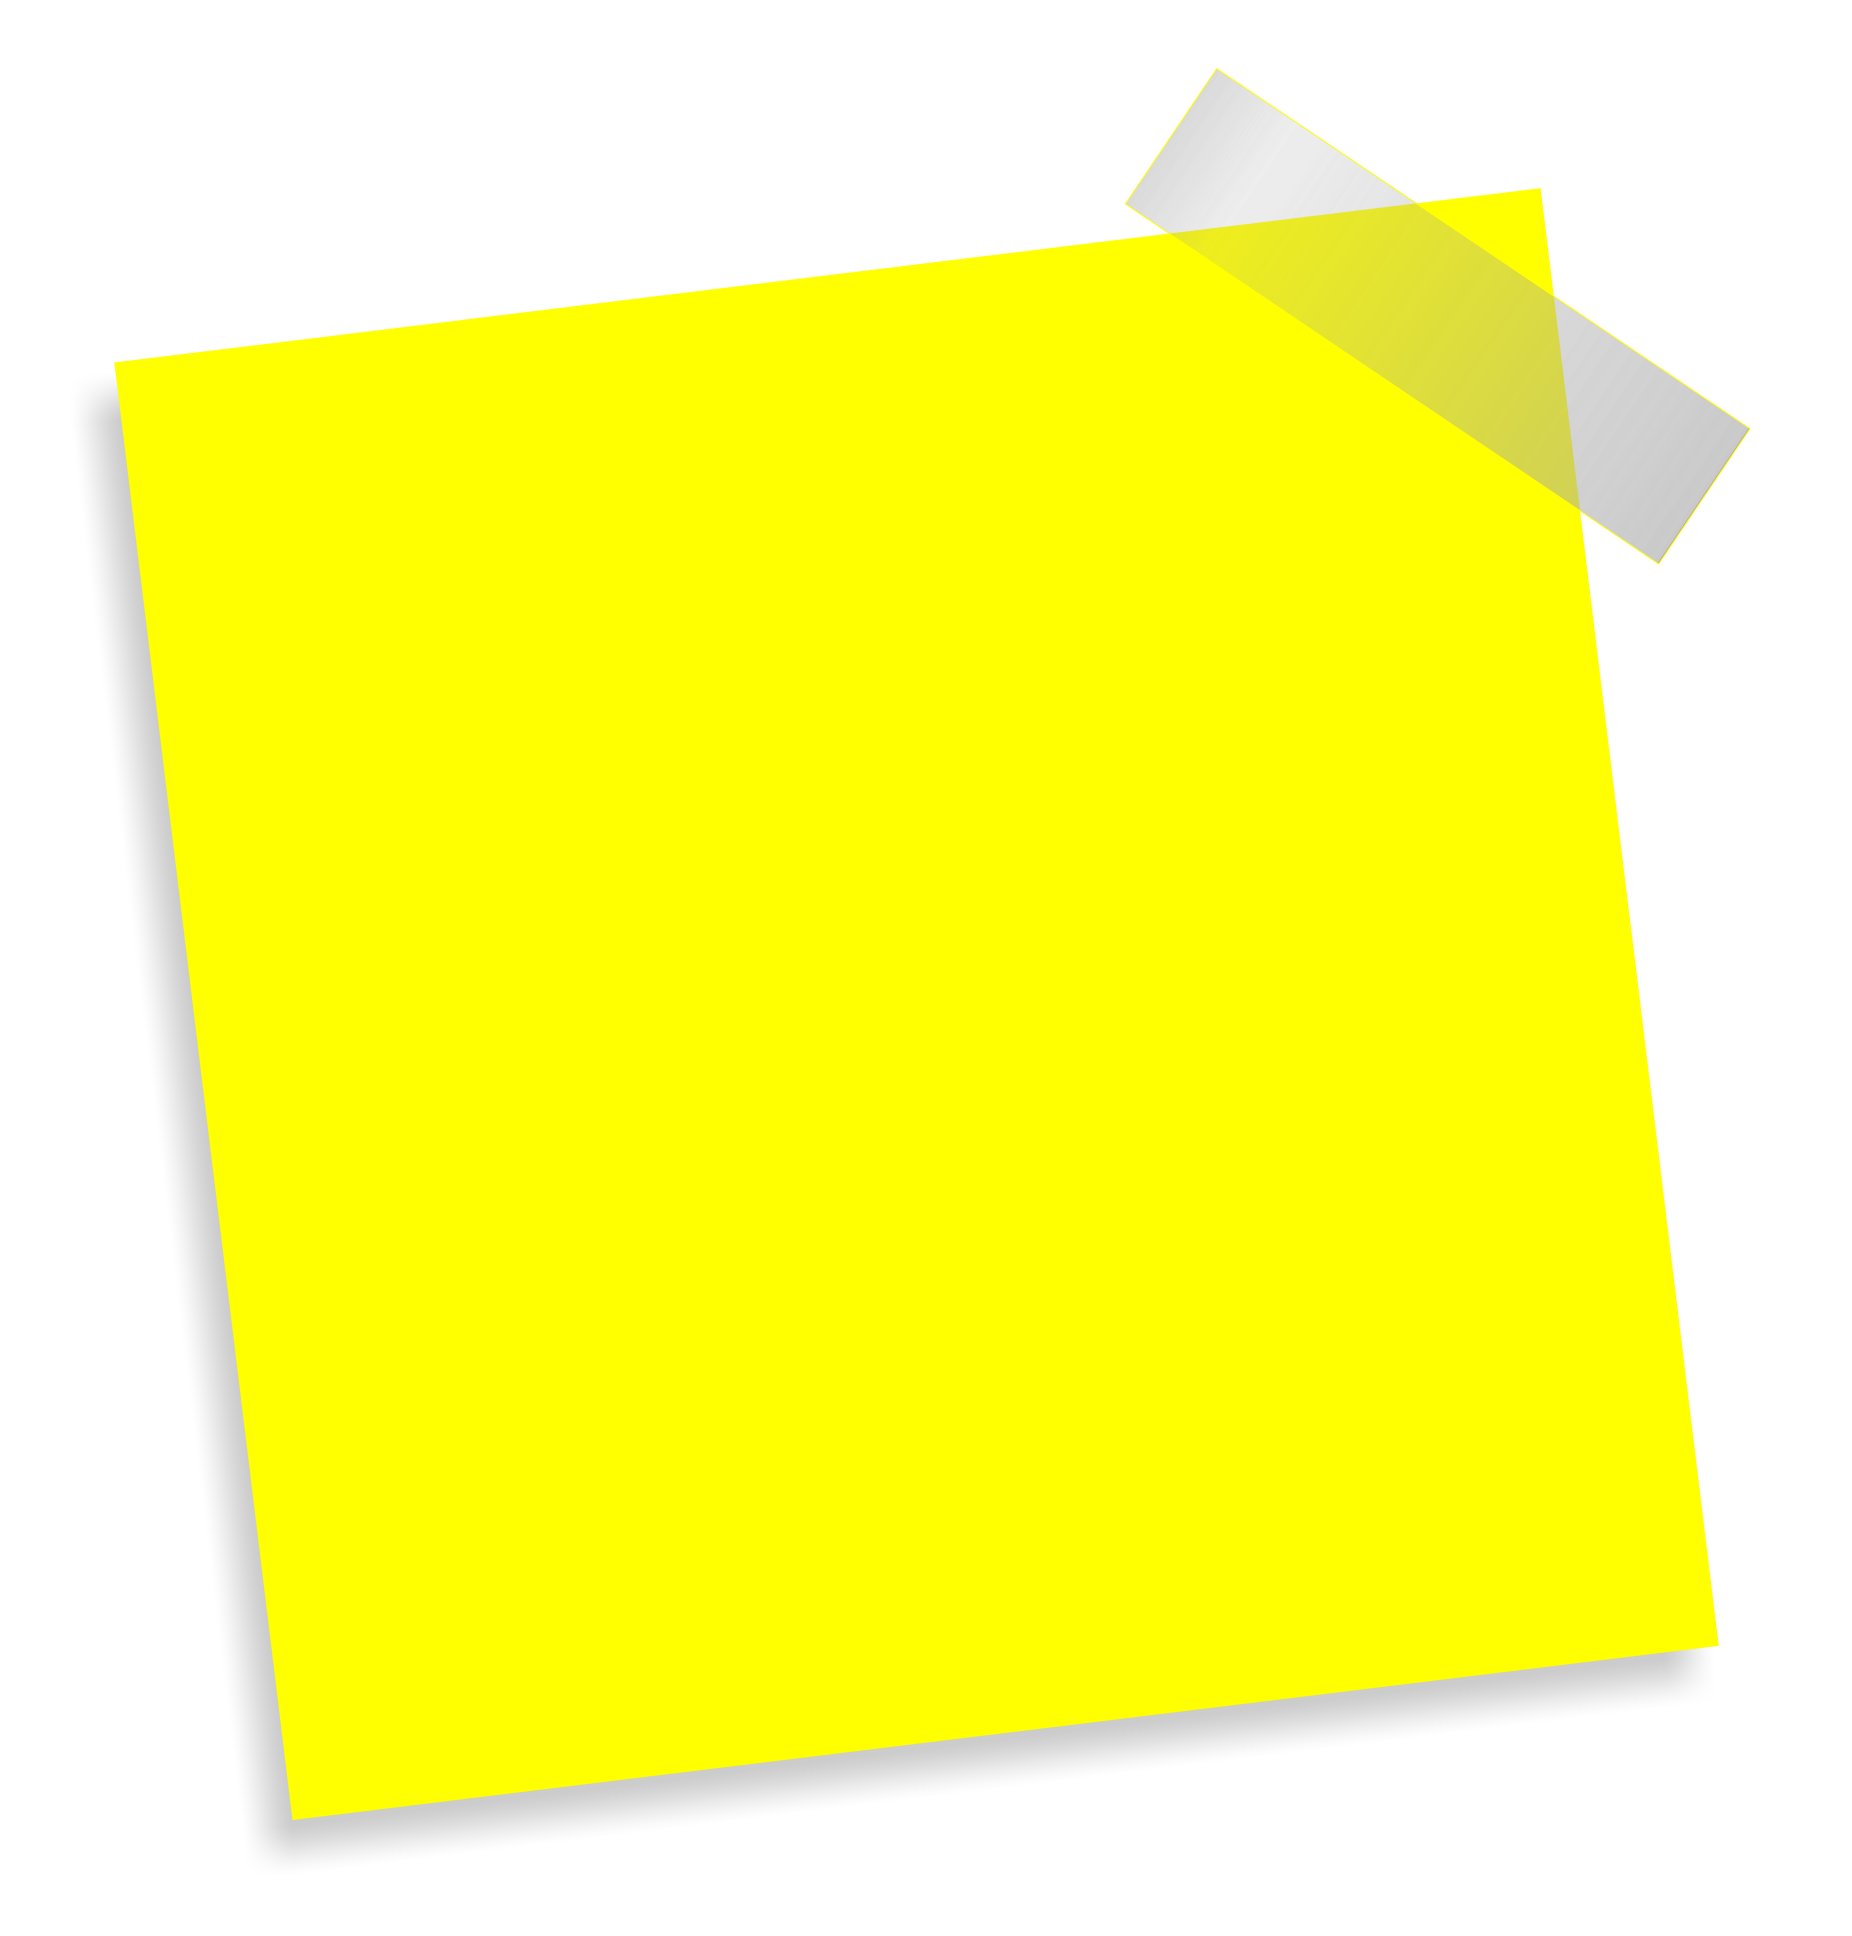 Paste Note PNG Image - PurePNG | Free transparent CC0 PNG ...